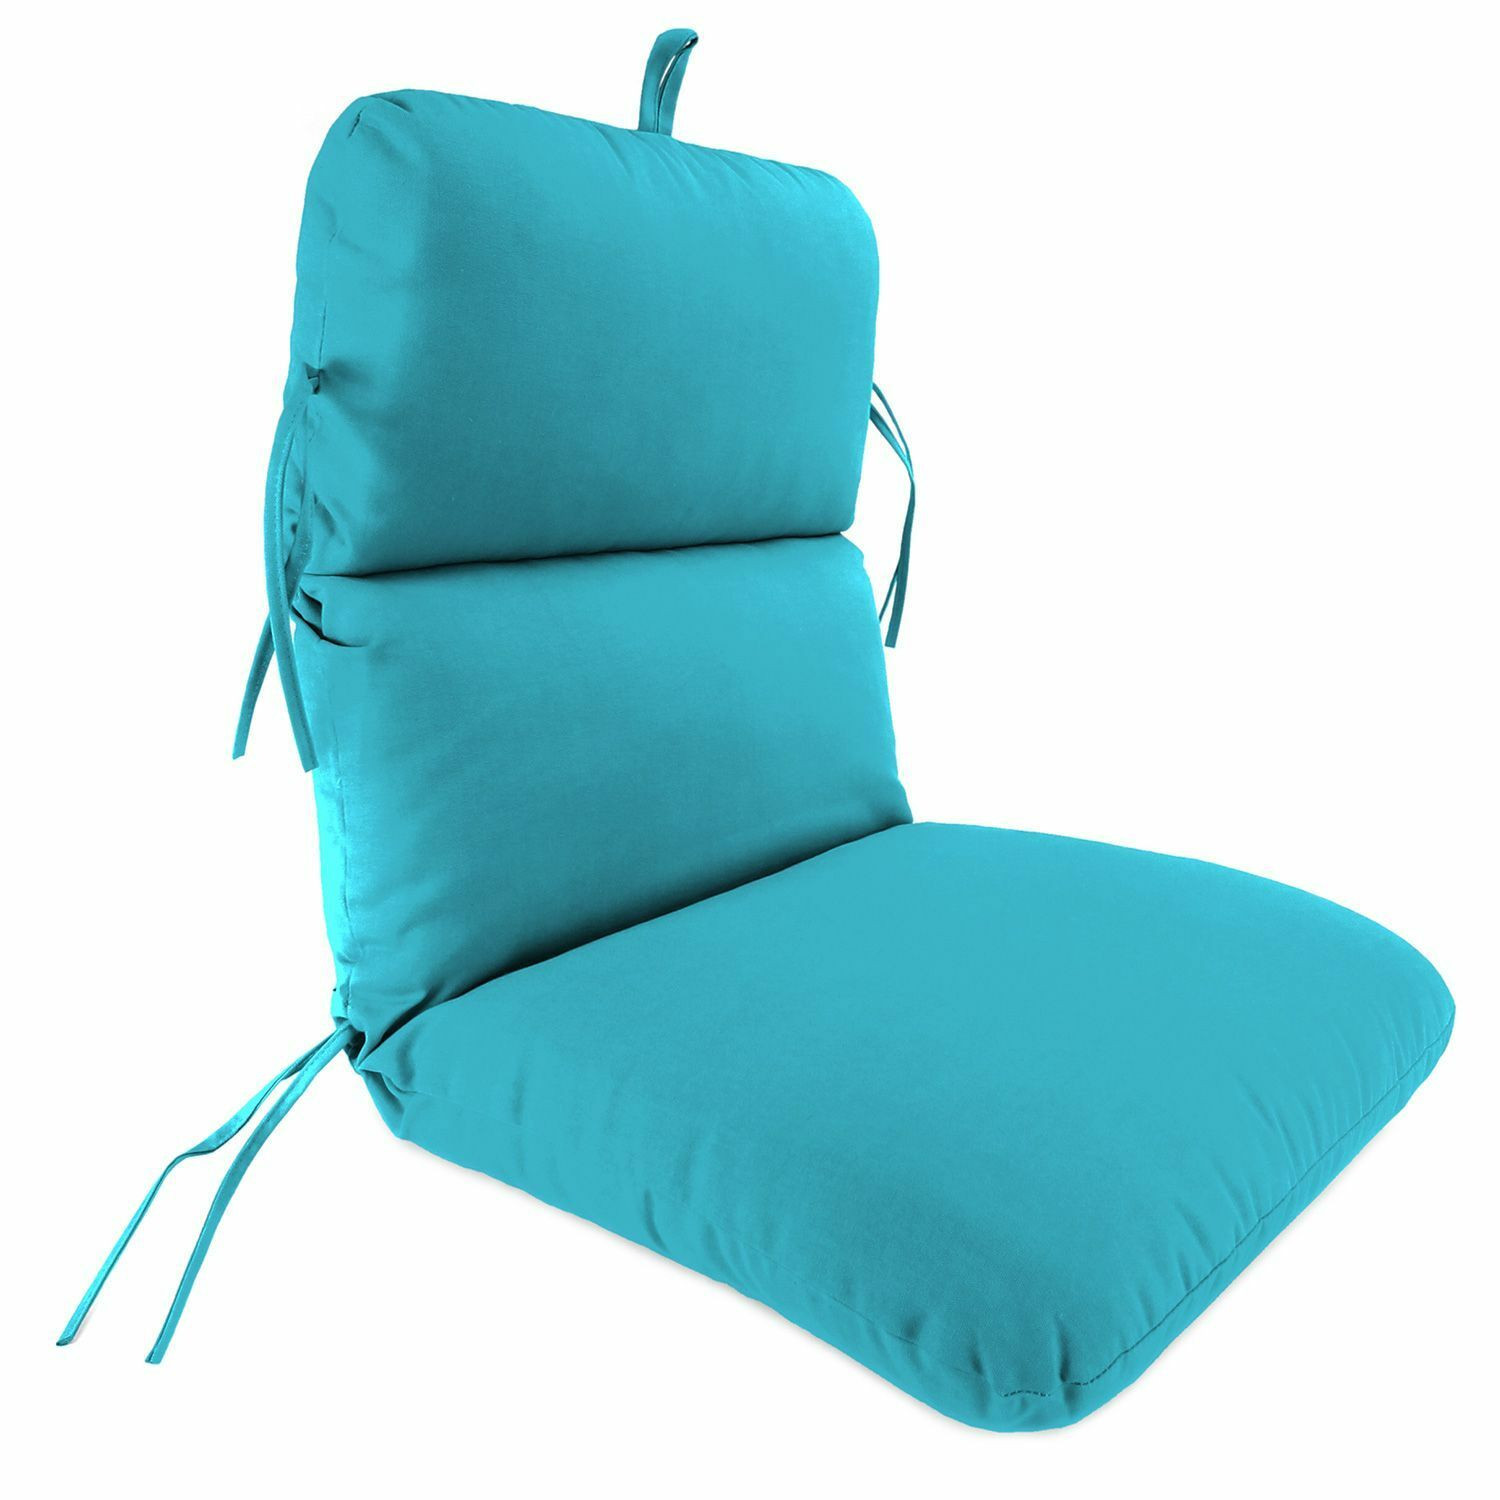 Best ideas about Outdoor Seat Cushions . Save or Pin Patio Chair Cushion Pad Furniture Seat Replace Outdoor Now.